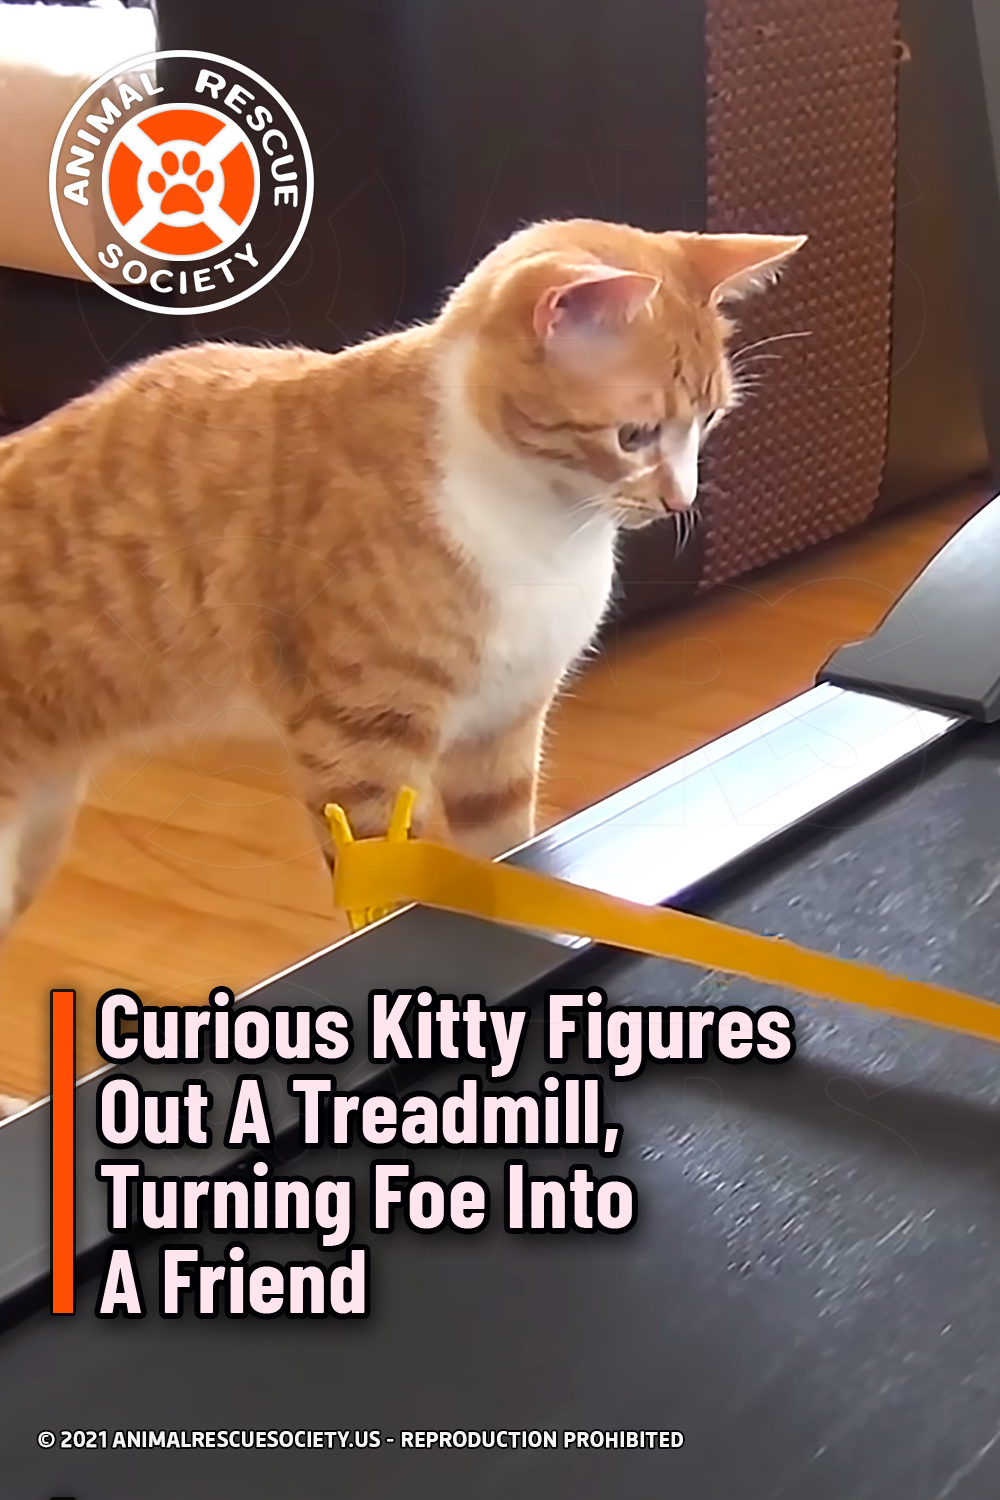 Curious Kitty Figures Out A Treadmill, Turning Foe Into A Friend